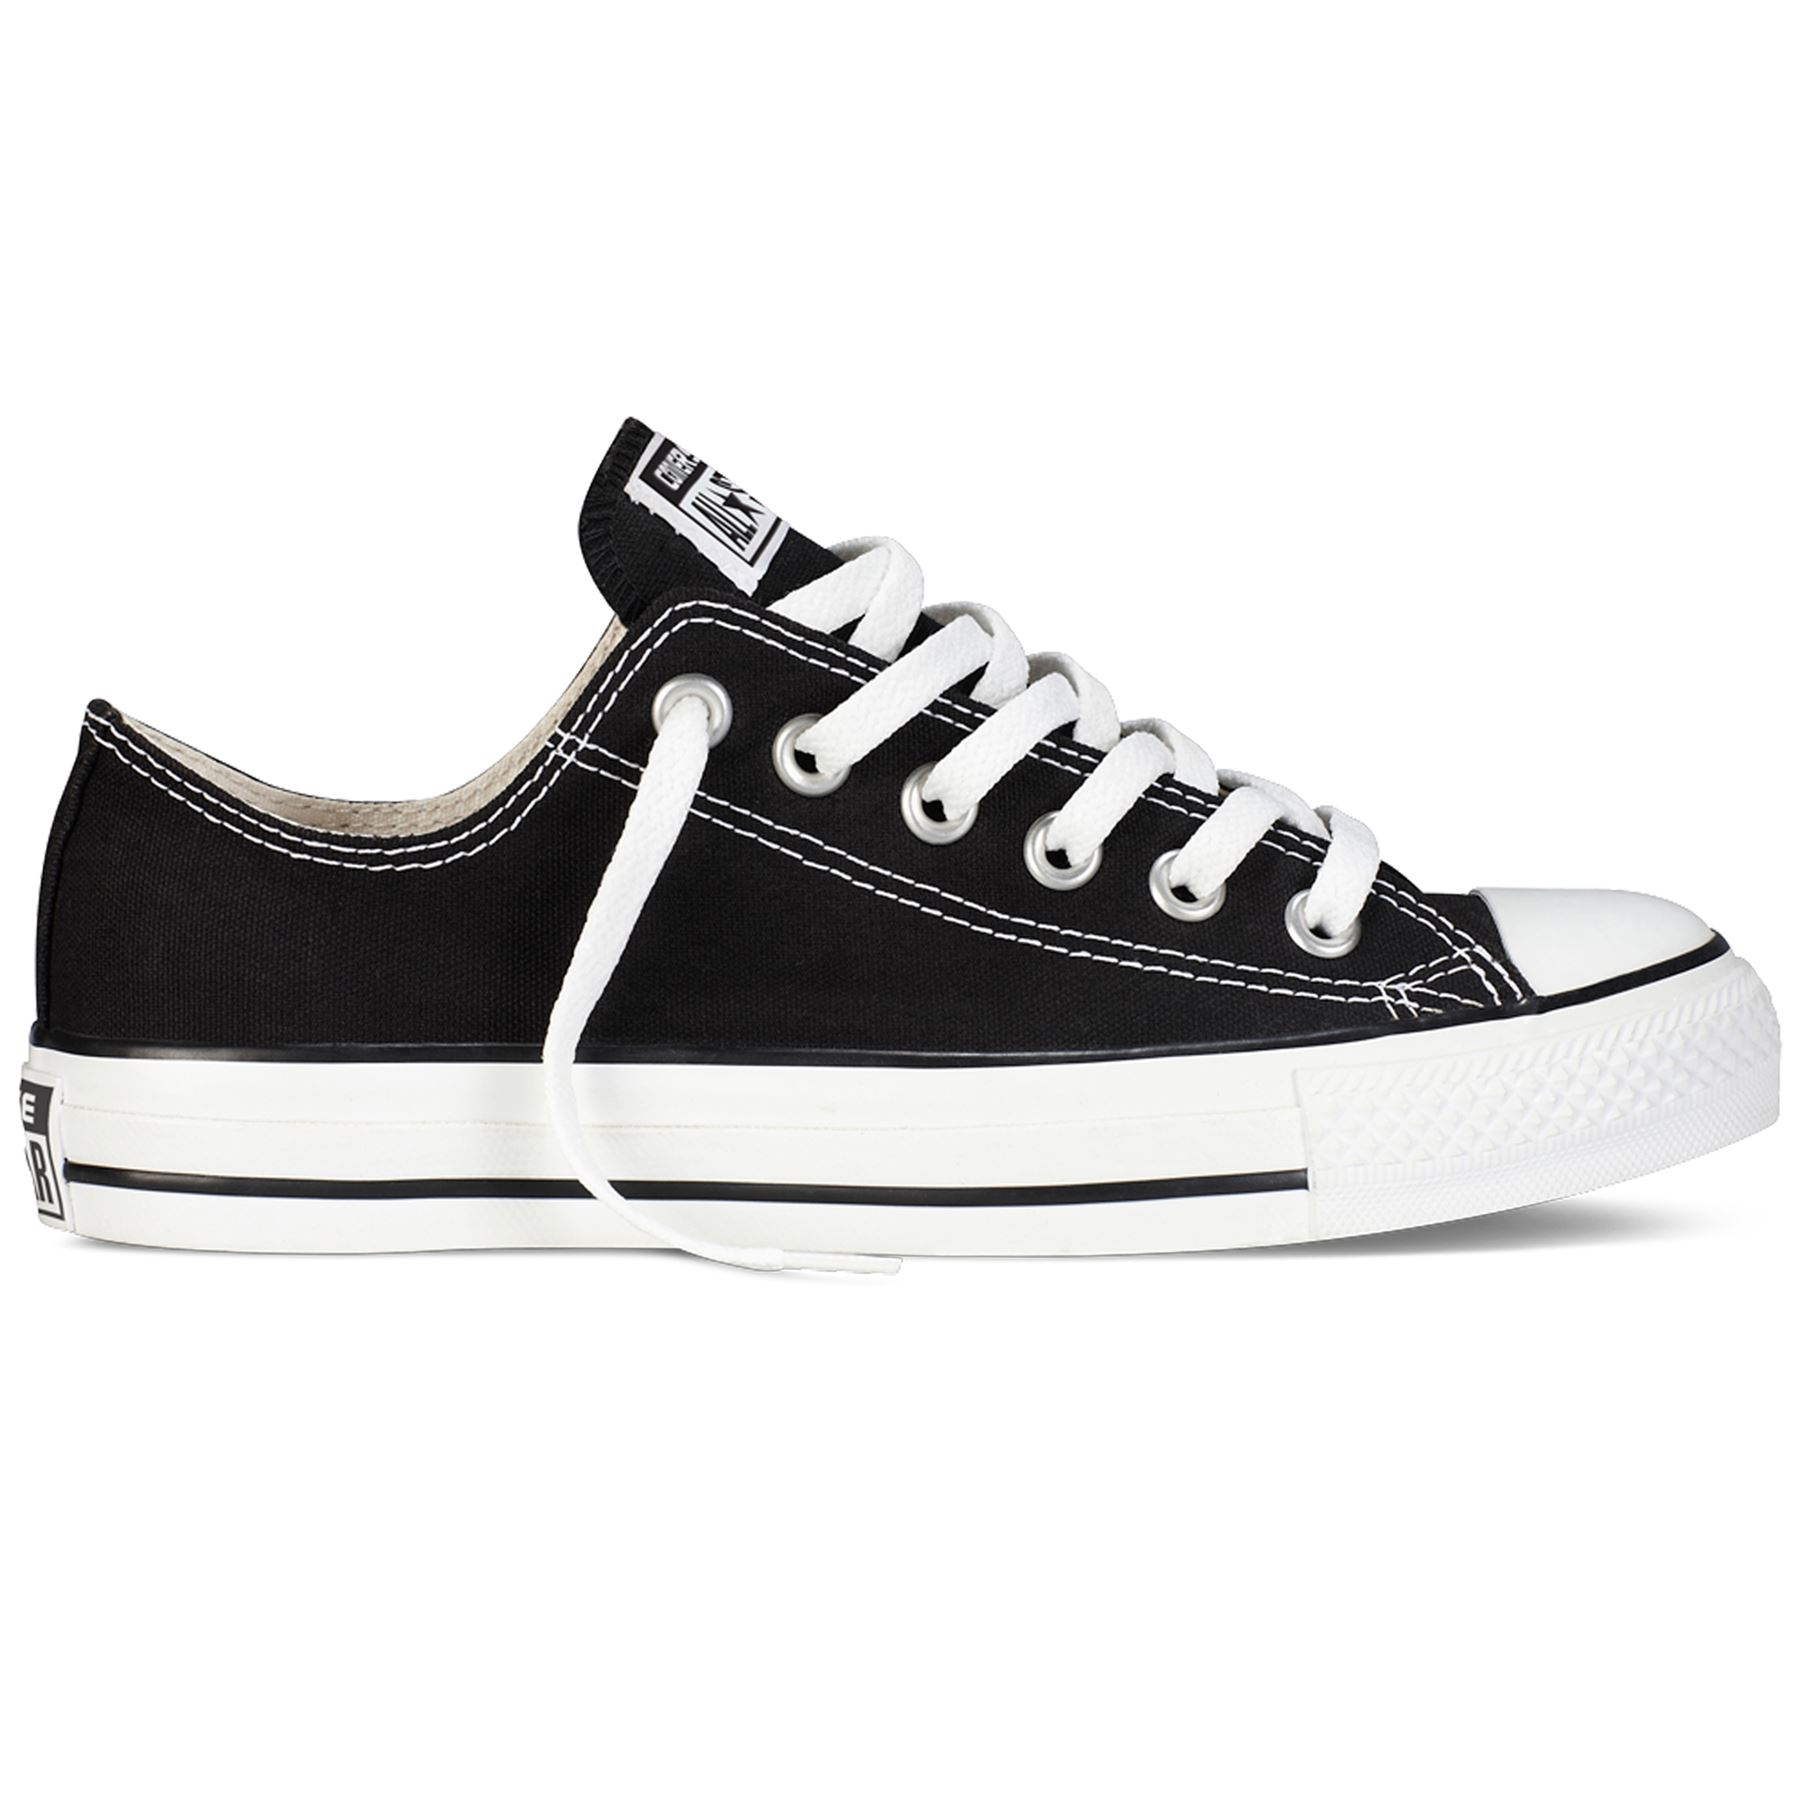 Converse-All-Star-Unisex-Chuck-Taylor-New-Mens-Womens-Low-Tops-Trainers-Pumps thumbnail 3